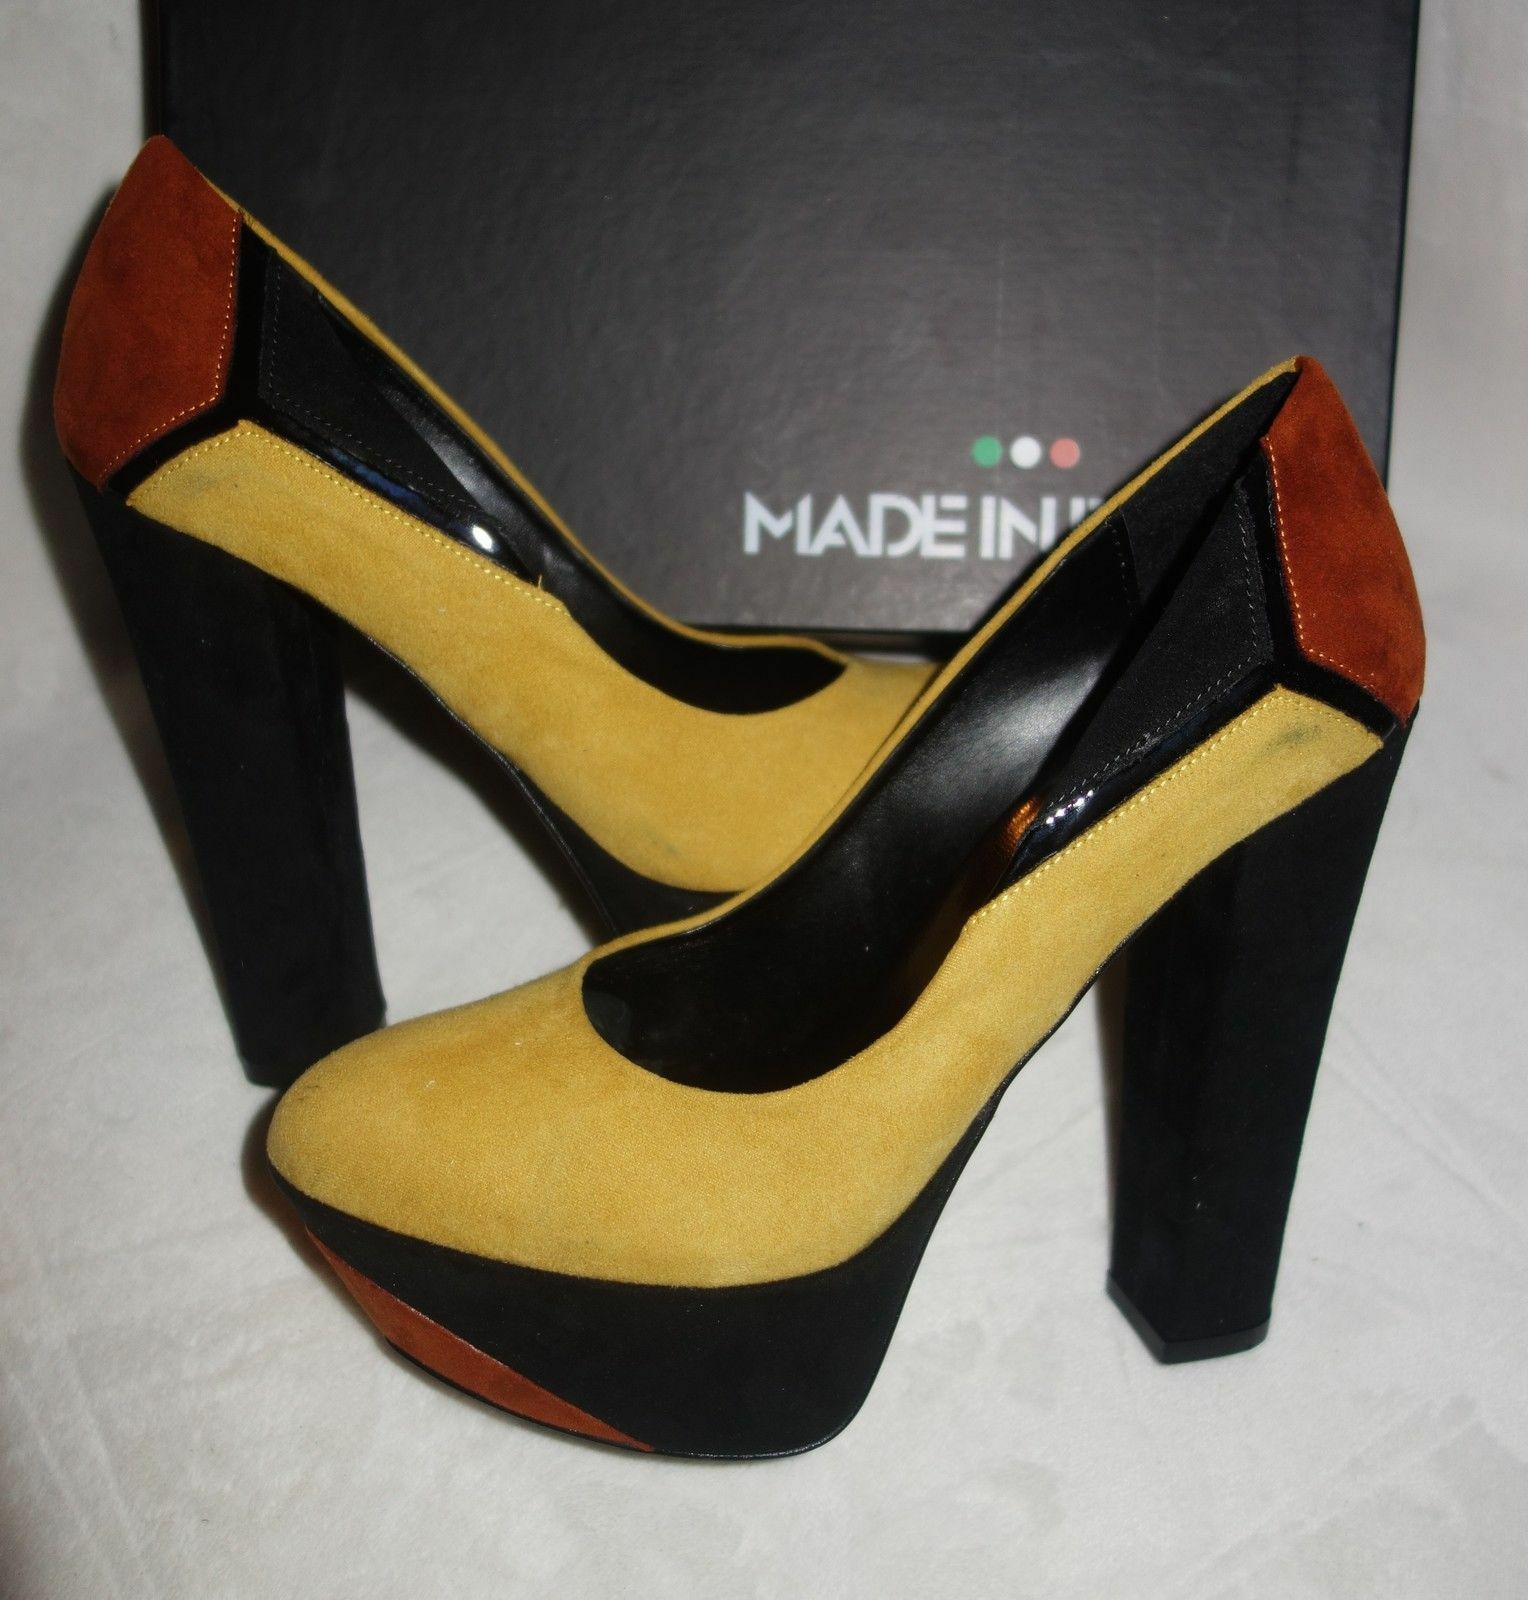 Platform Pumps 40 multi color Suede  Größe 40 Pumps us 9.5 new fdf45a